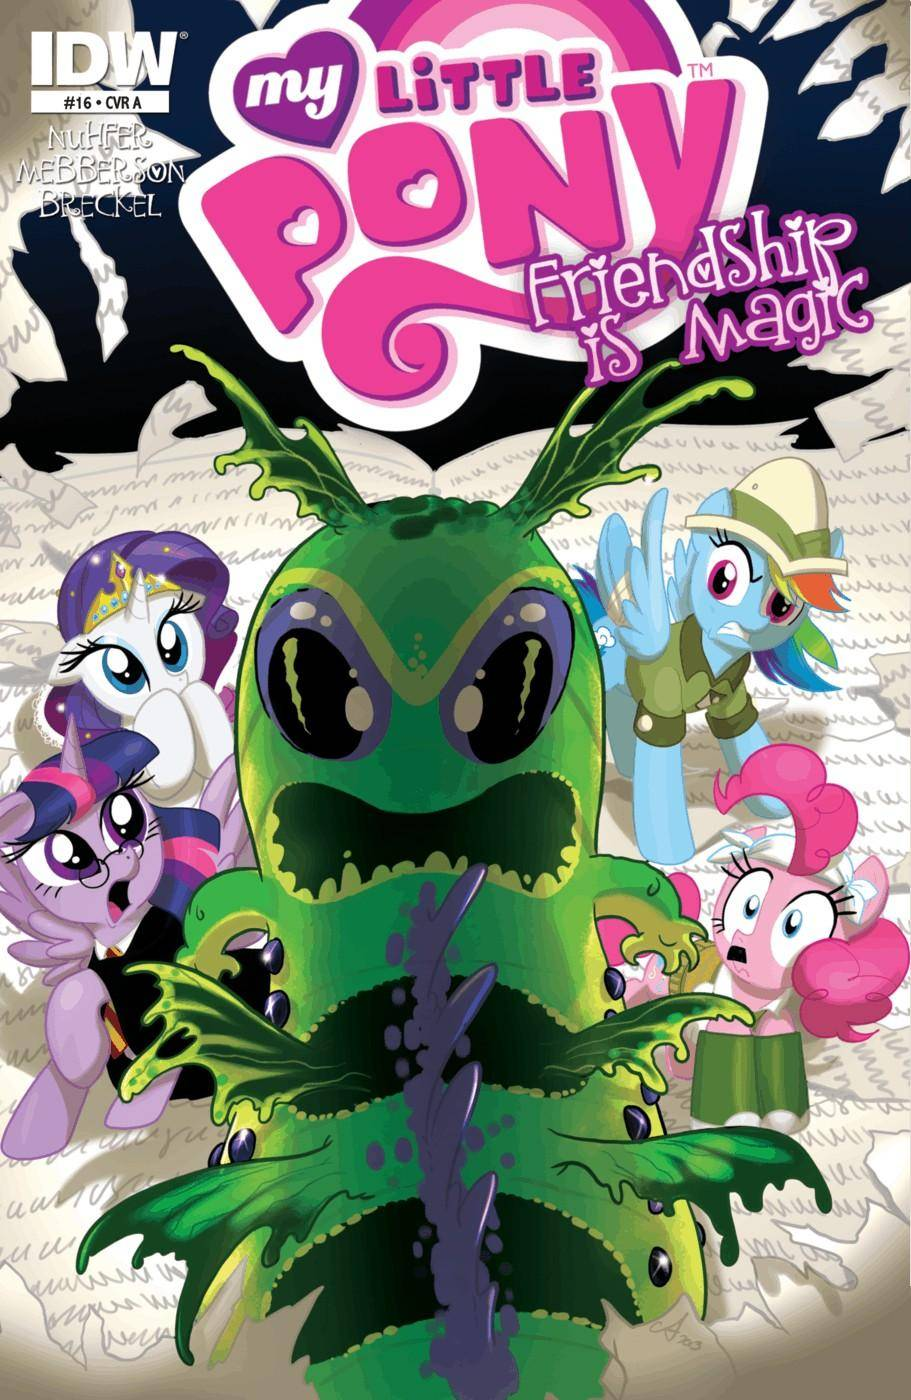 My Little Pony - Friendship is Magic 016 2014 2 covers digital